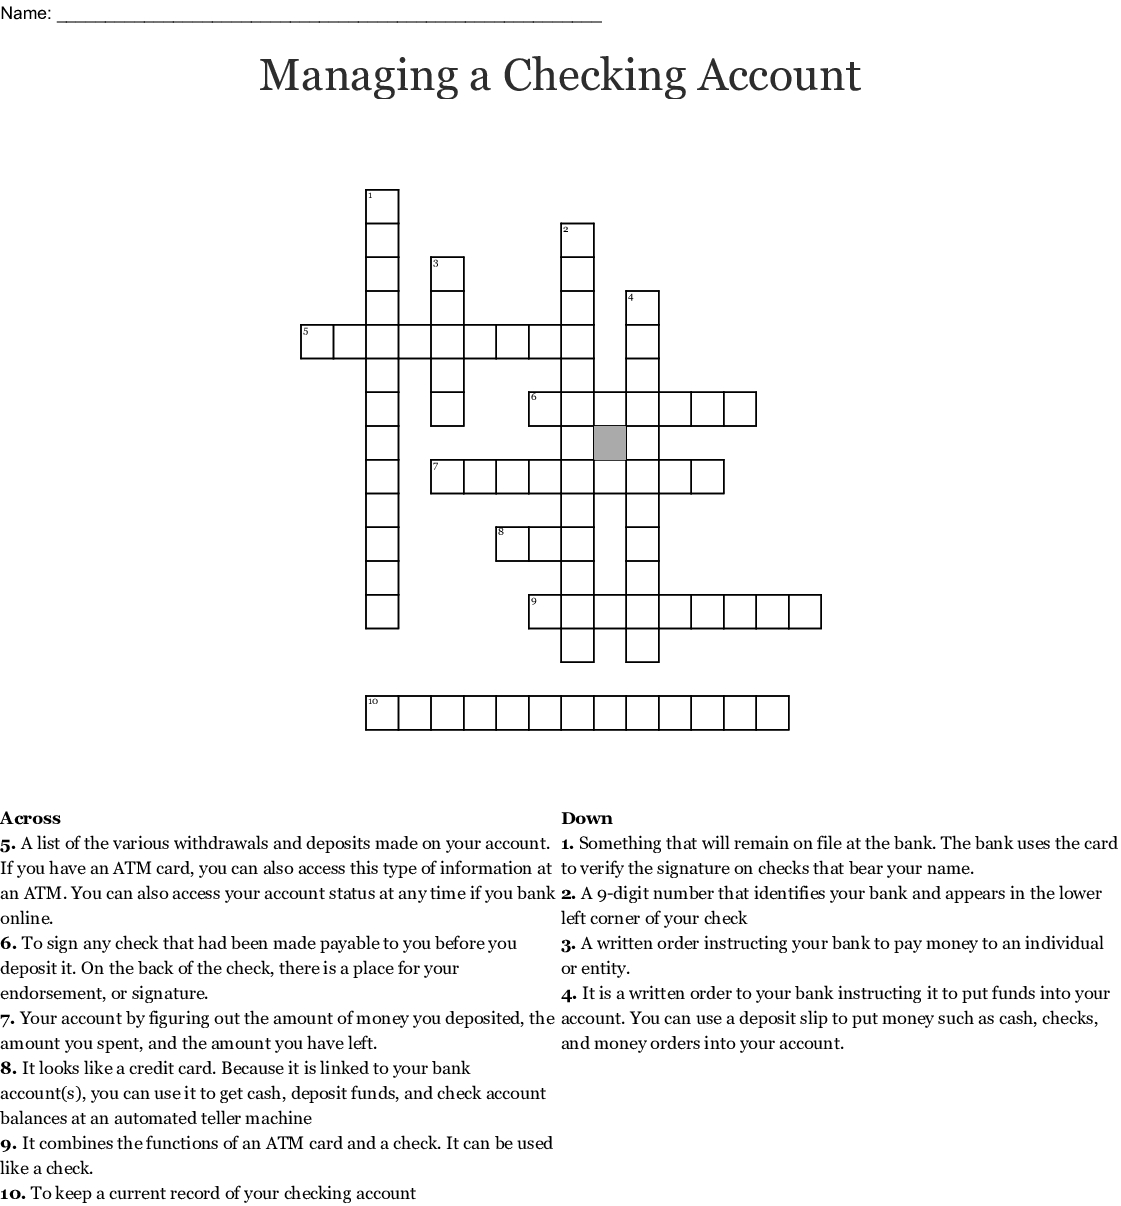 Managing A Checking Account Worksheet Answers